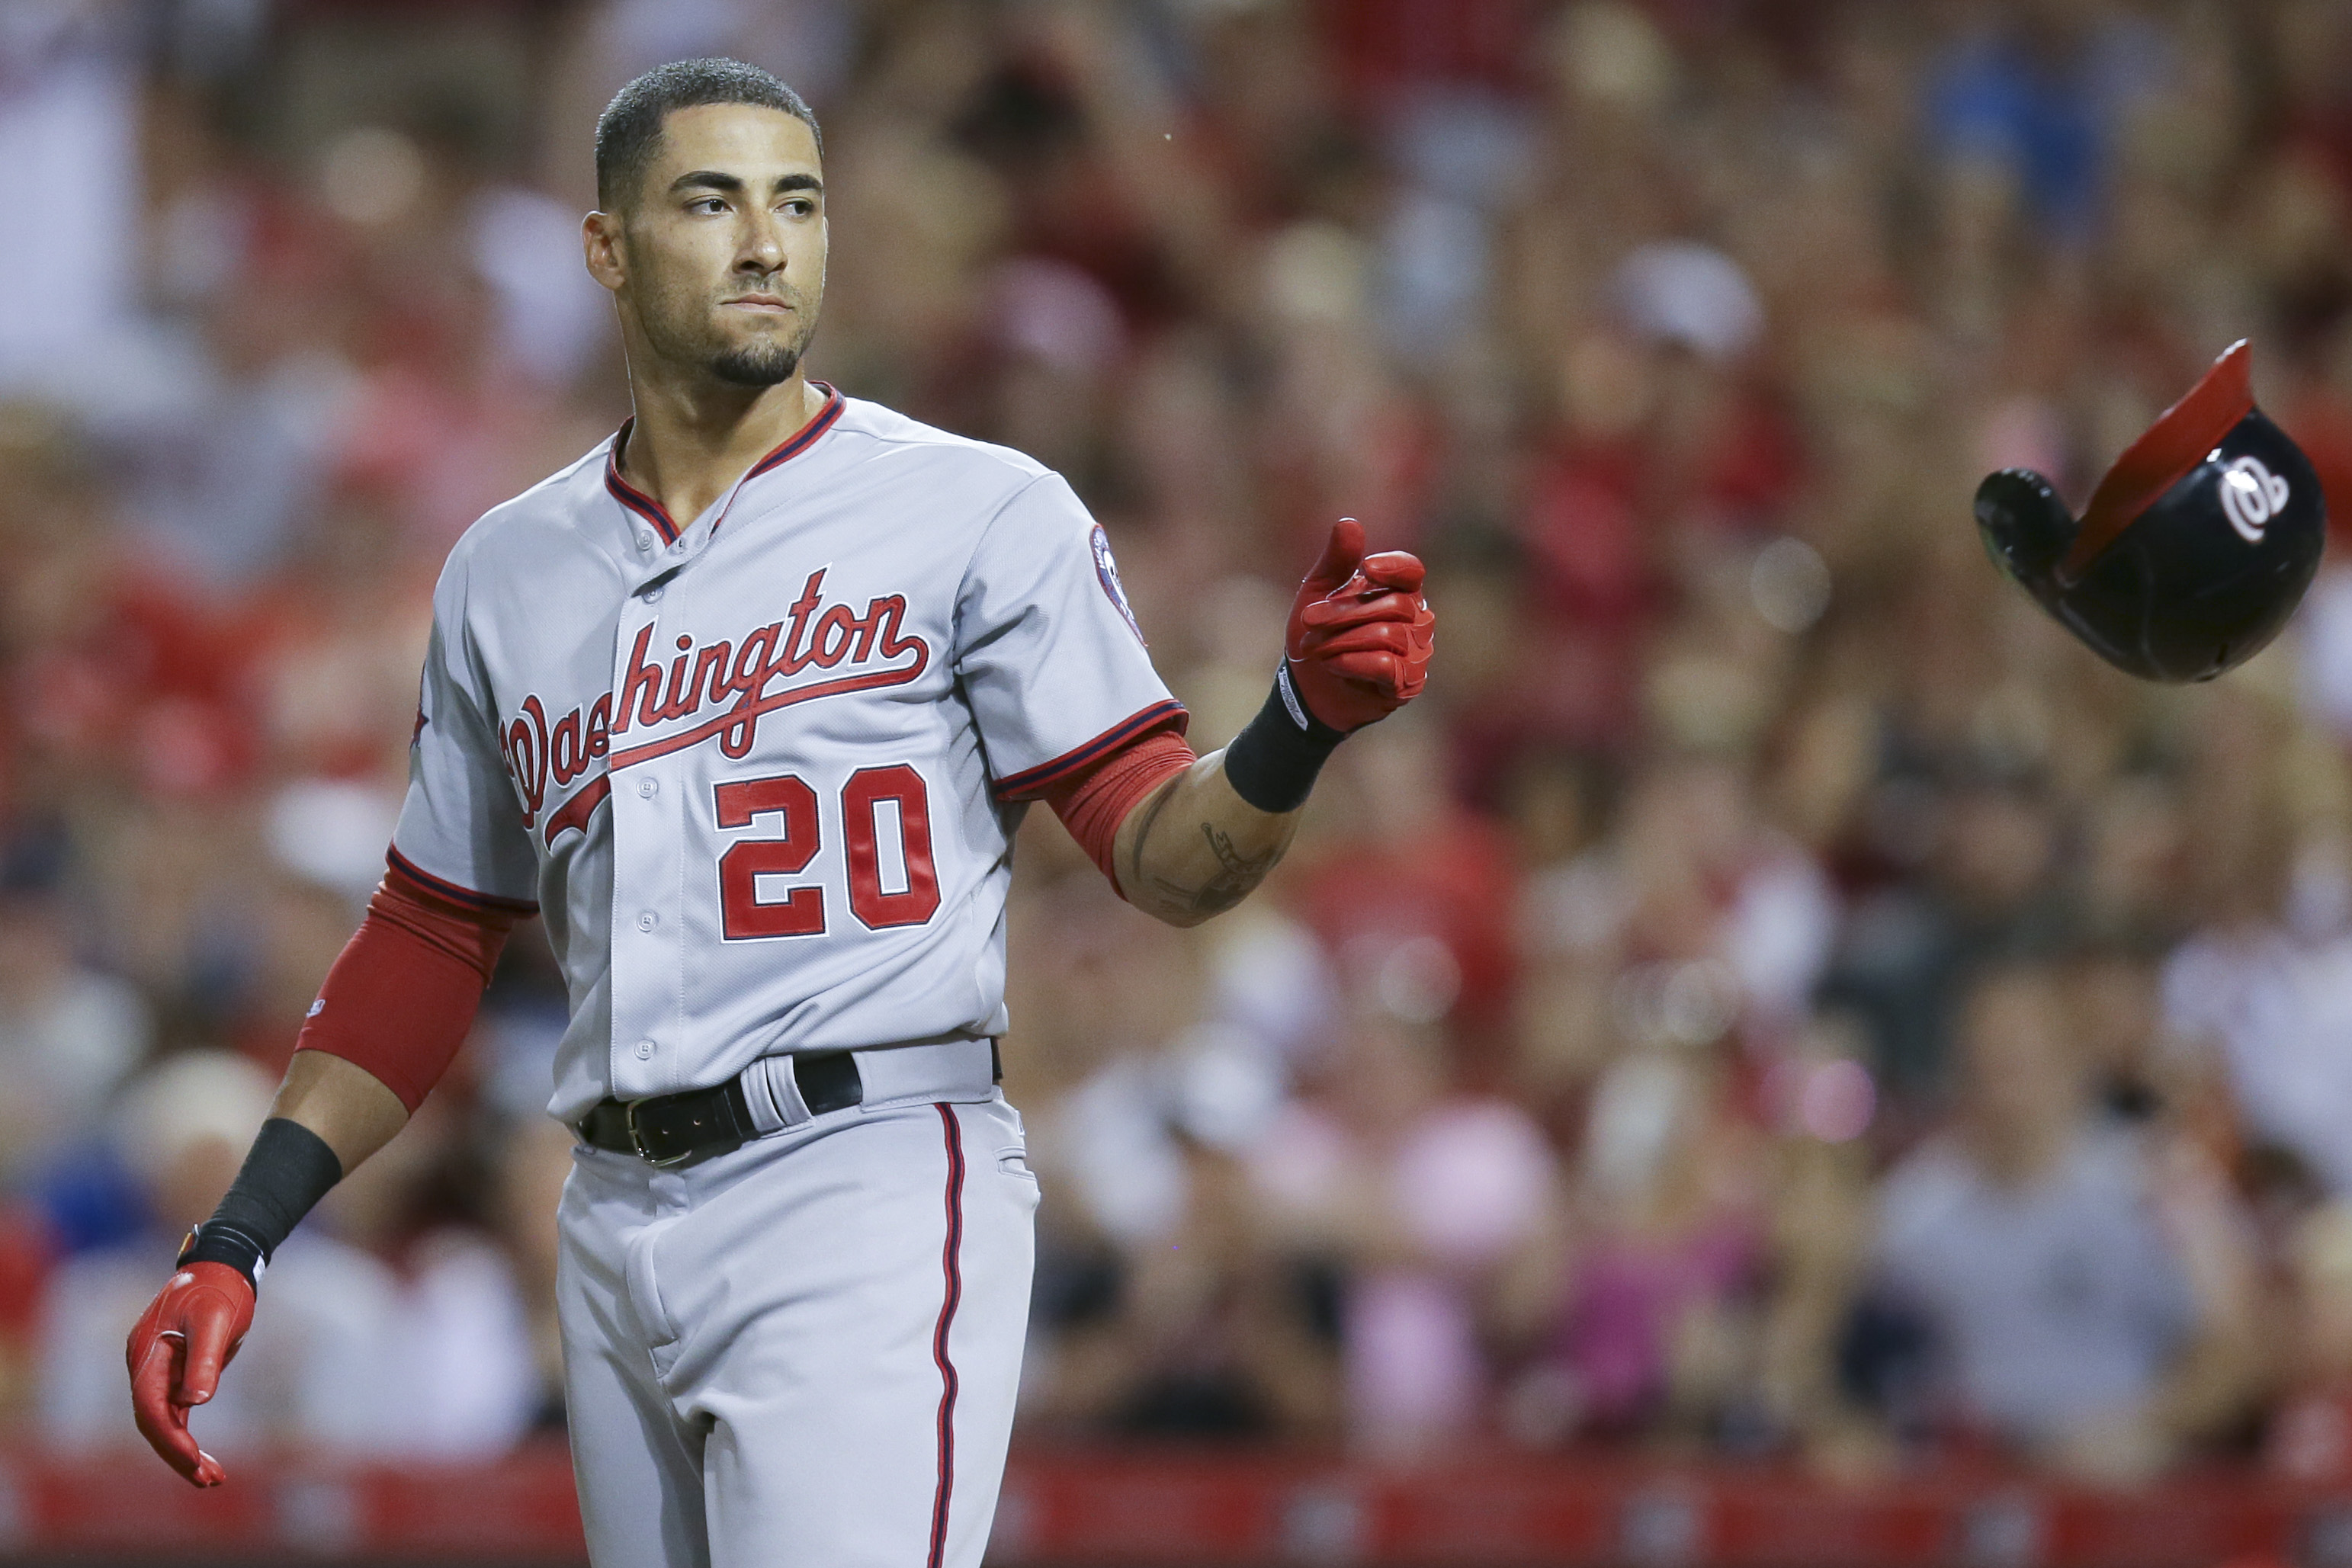 Hot Stove Digest: Nationals not likely to pursue Ian Desmond